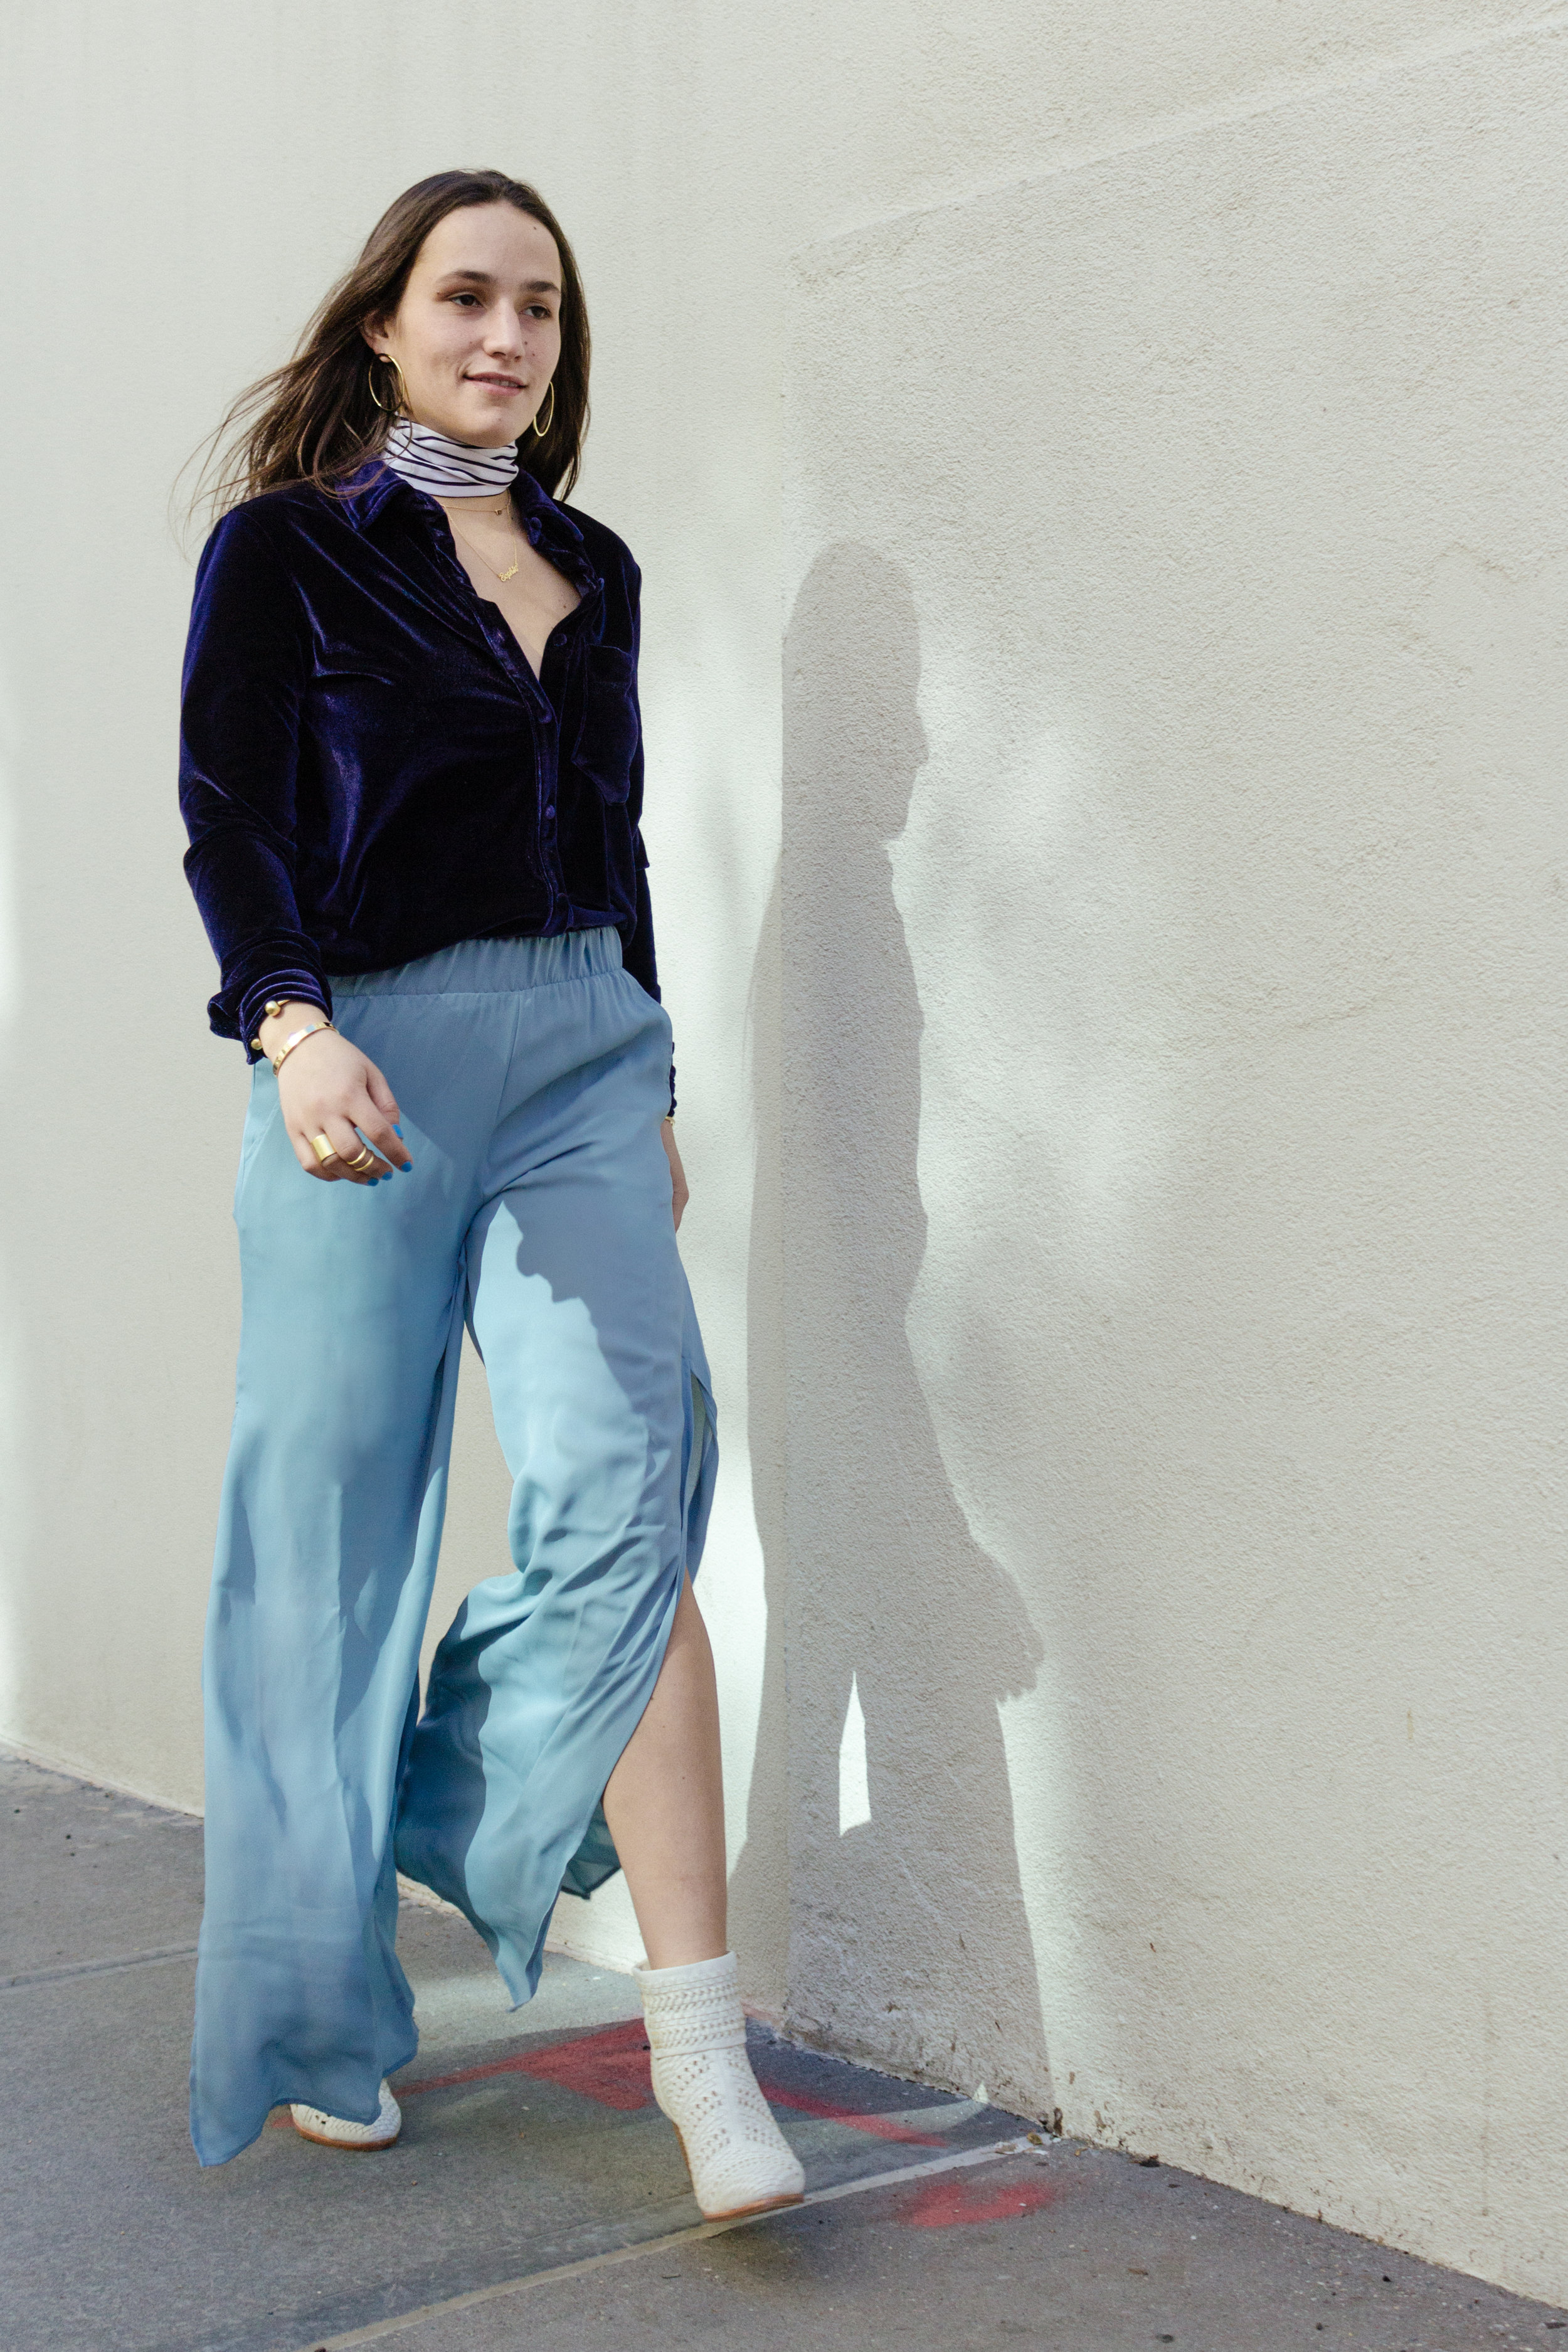 SOPHIE BICKLEY YIN 2MY YANG SISTER FASHION BLOG NYC SHADES OF BLUE POST